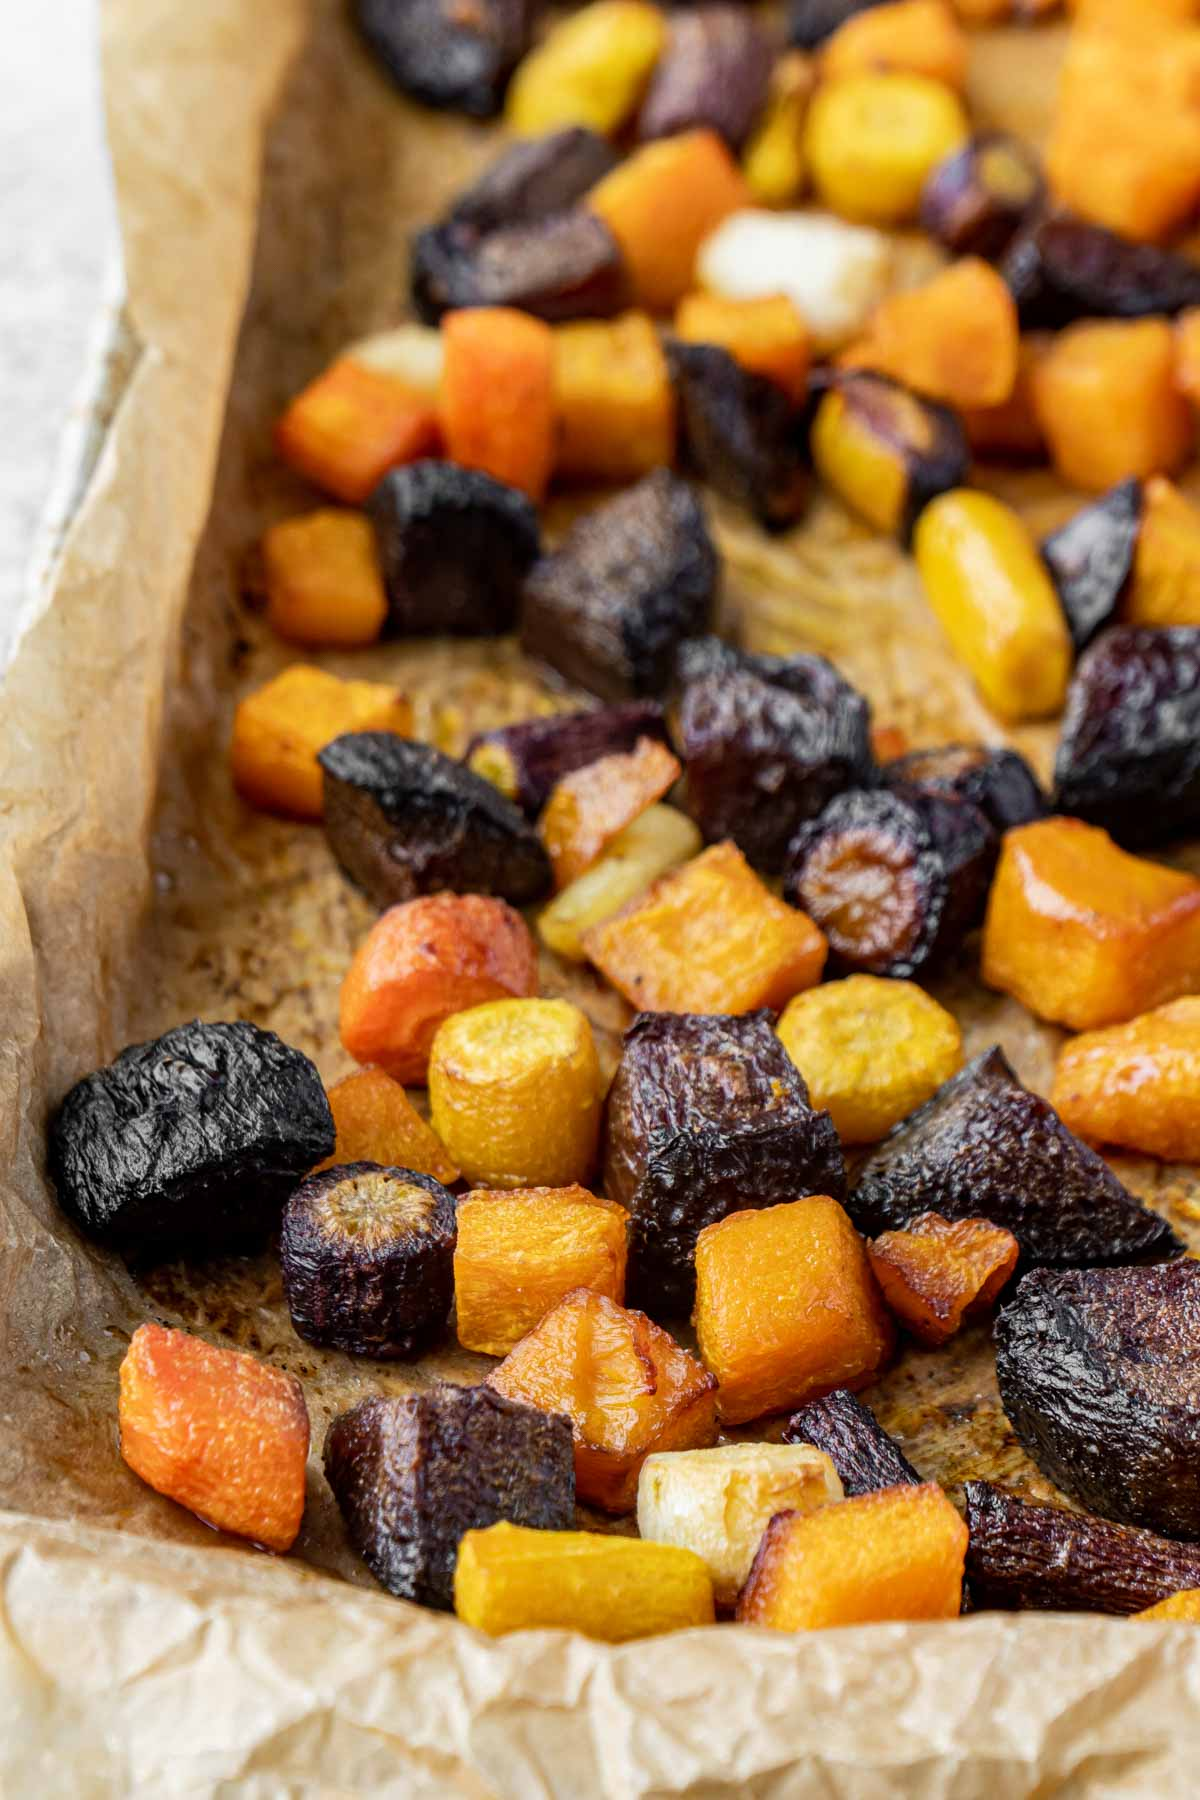 Chopped roasted root vegetables on a baking sheet with parchment paper